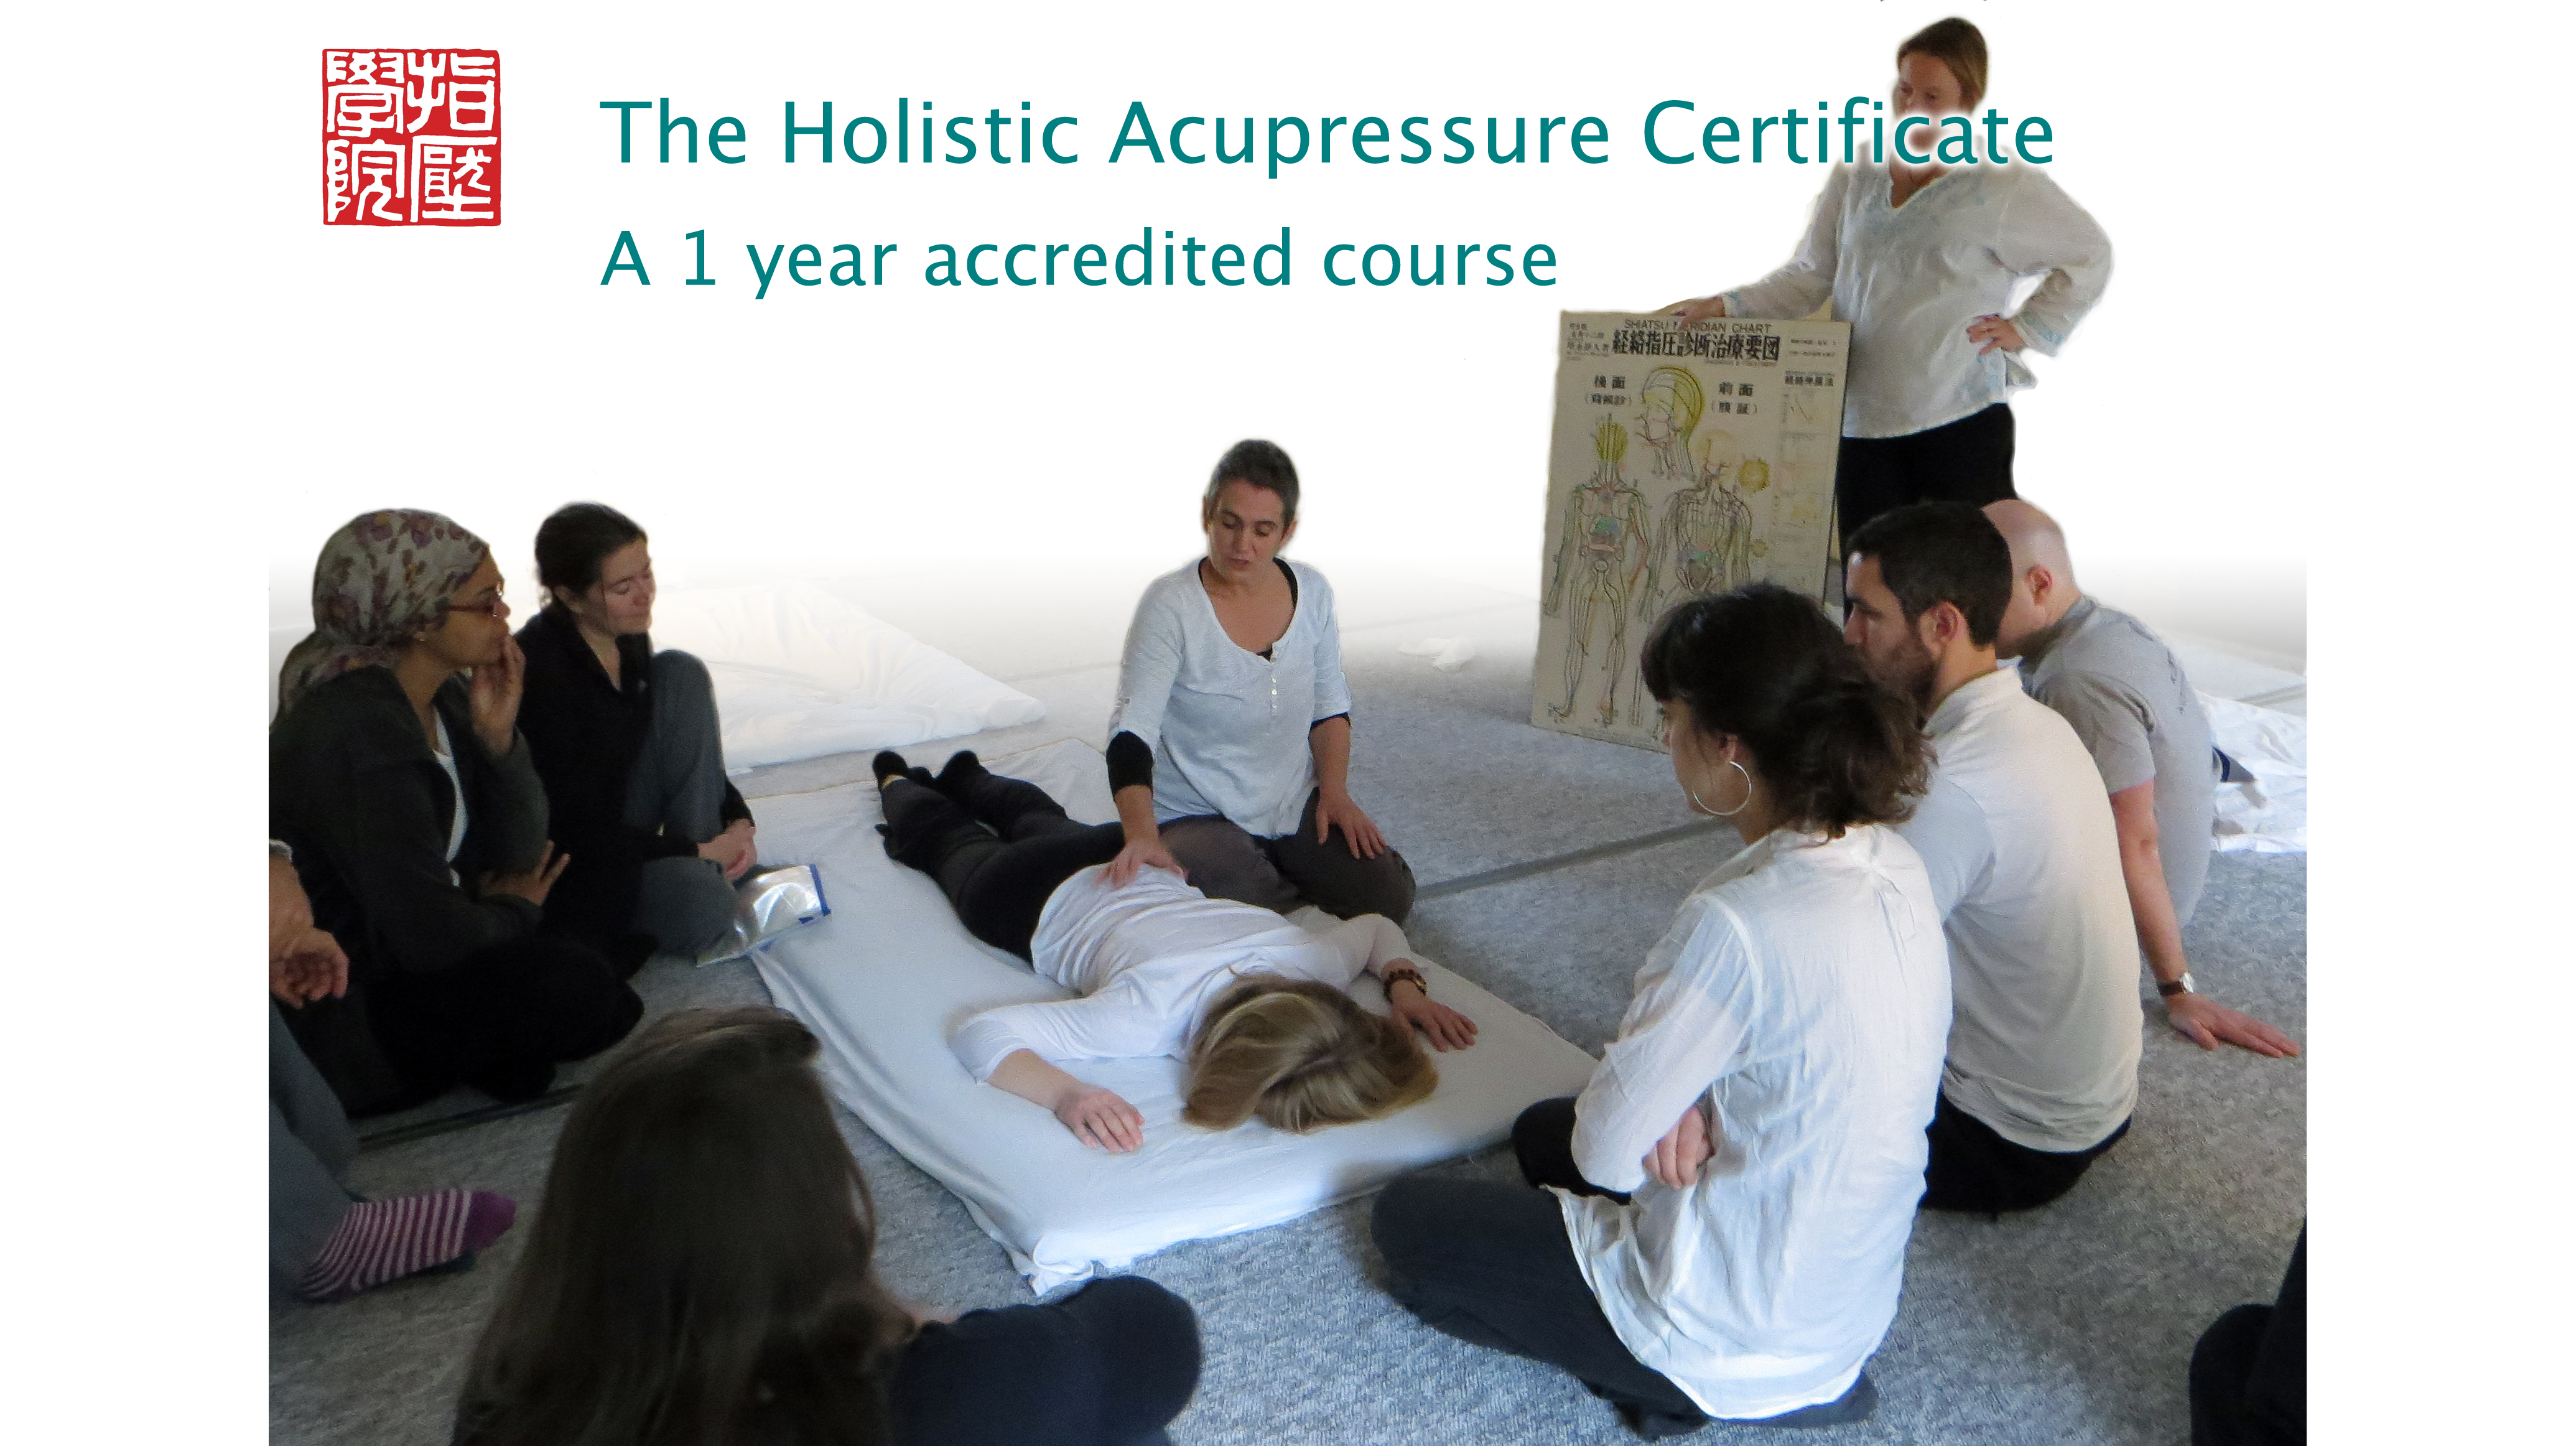 Holistic Acupressure Certificate | Norwich Wellbeing Centre